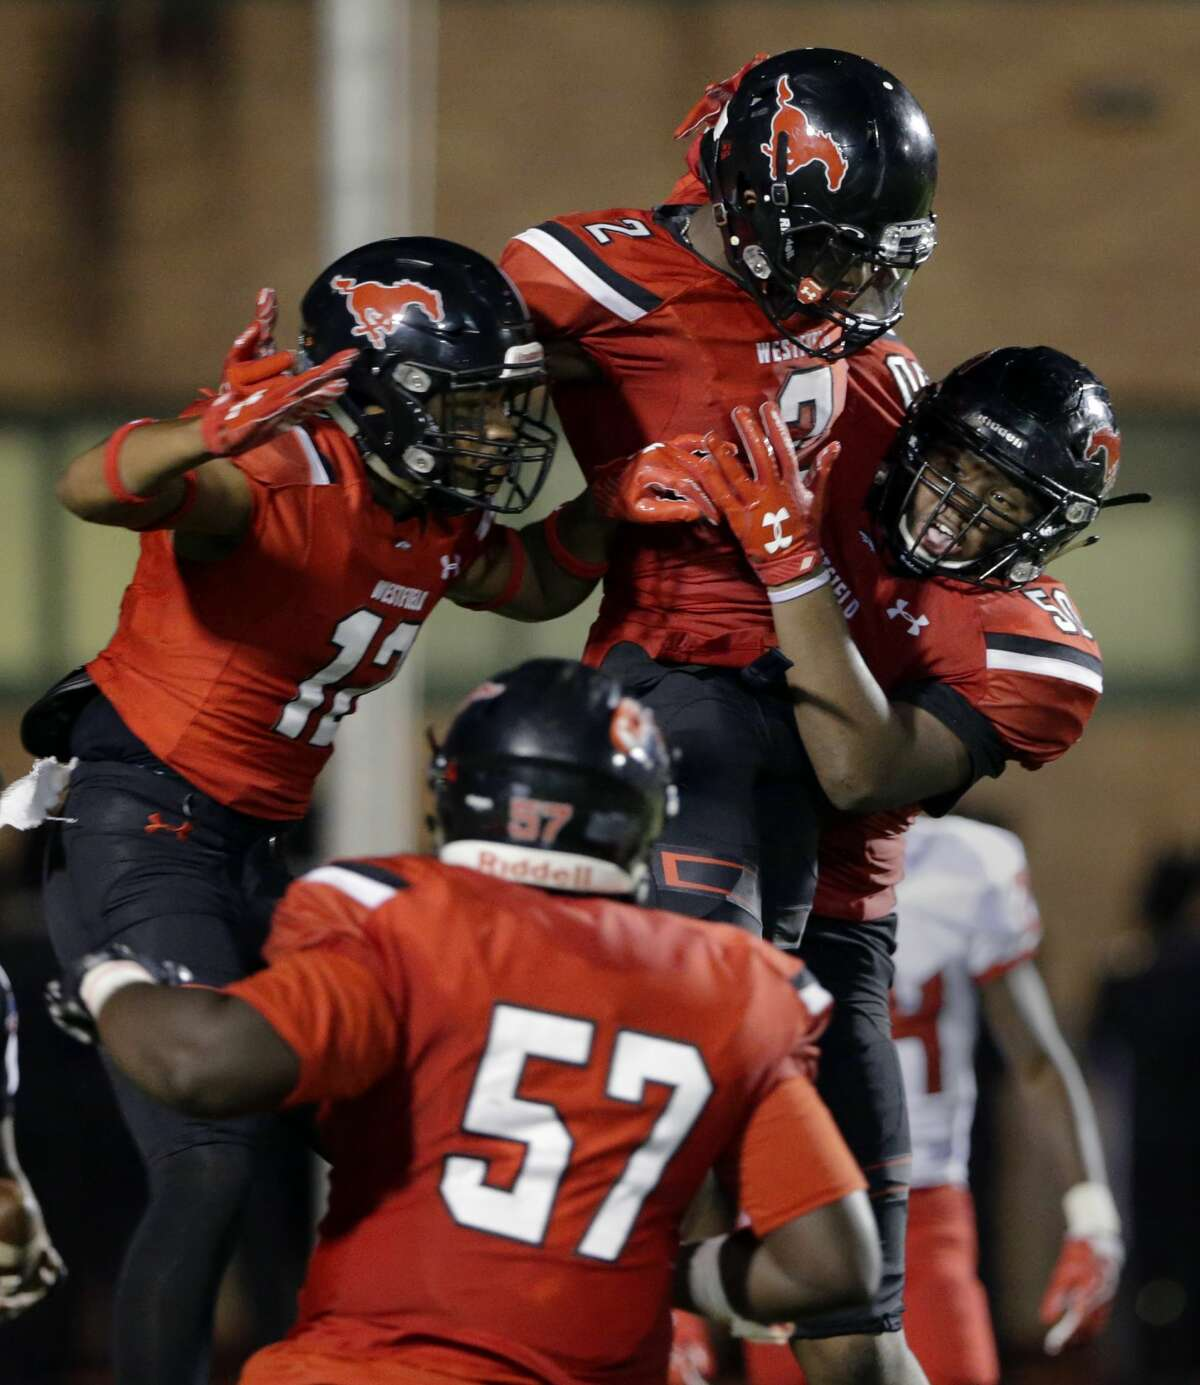 Sept. 15: Westfield 37, North Shore 20 Westfield players (from left) Ra'Quon Washington (12), John Kennedy (57), Ali Walter (2) and Jawaun Singletary (50) celebrate Walter's touchdown against North Shore in the first half of their game at George Stadium in Spring, TX, Sept. 15, 2017. (Michael Wyke / For the Chronicle)